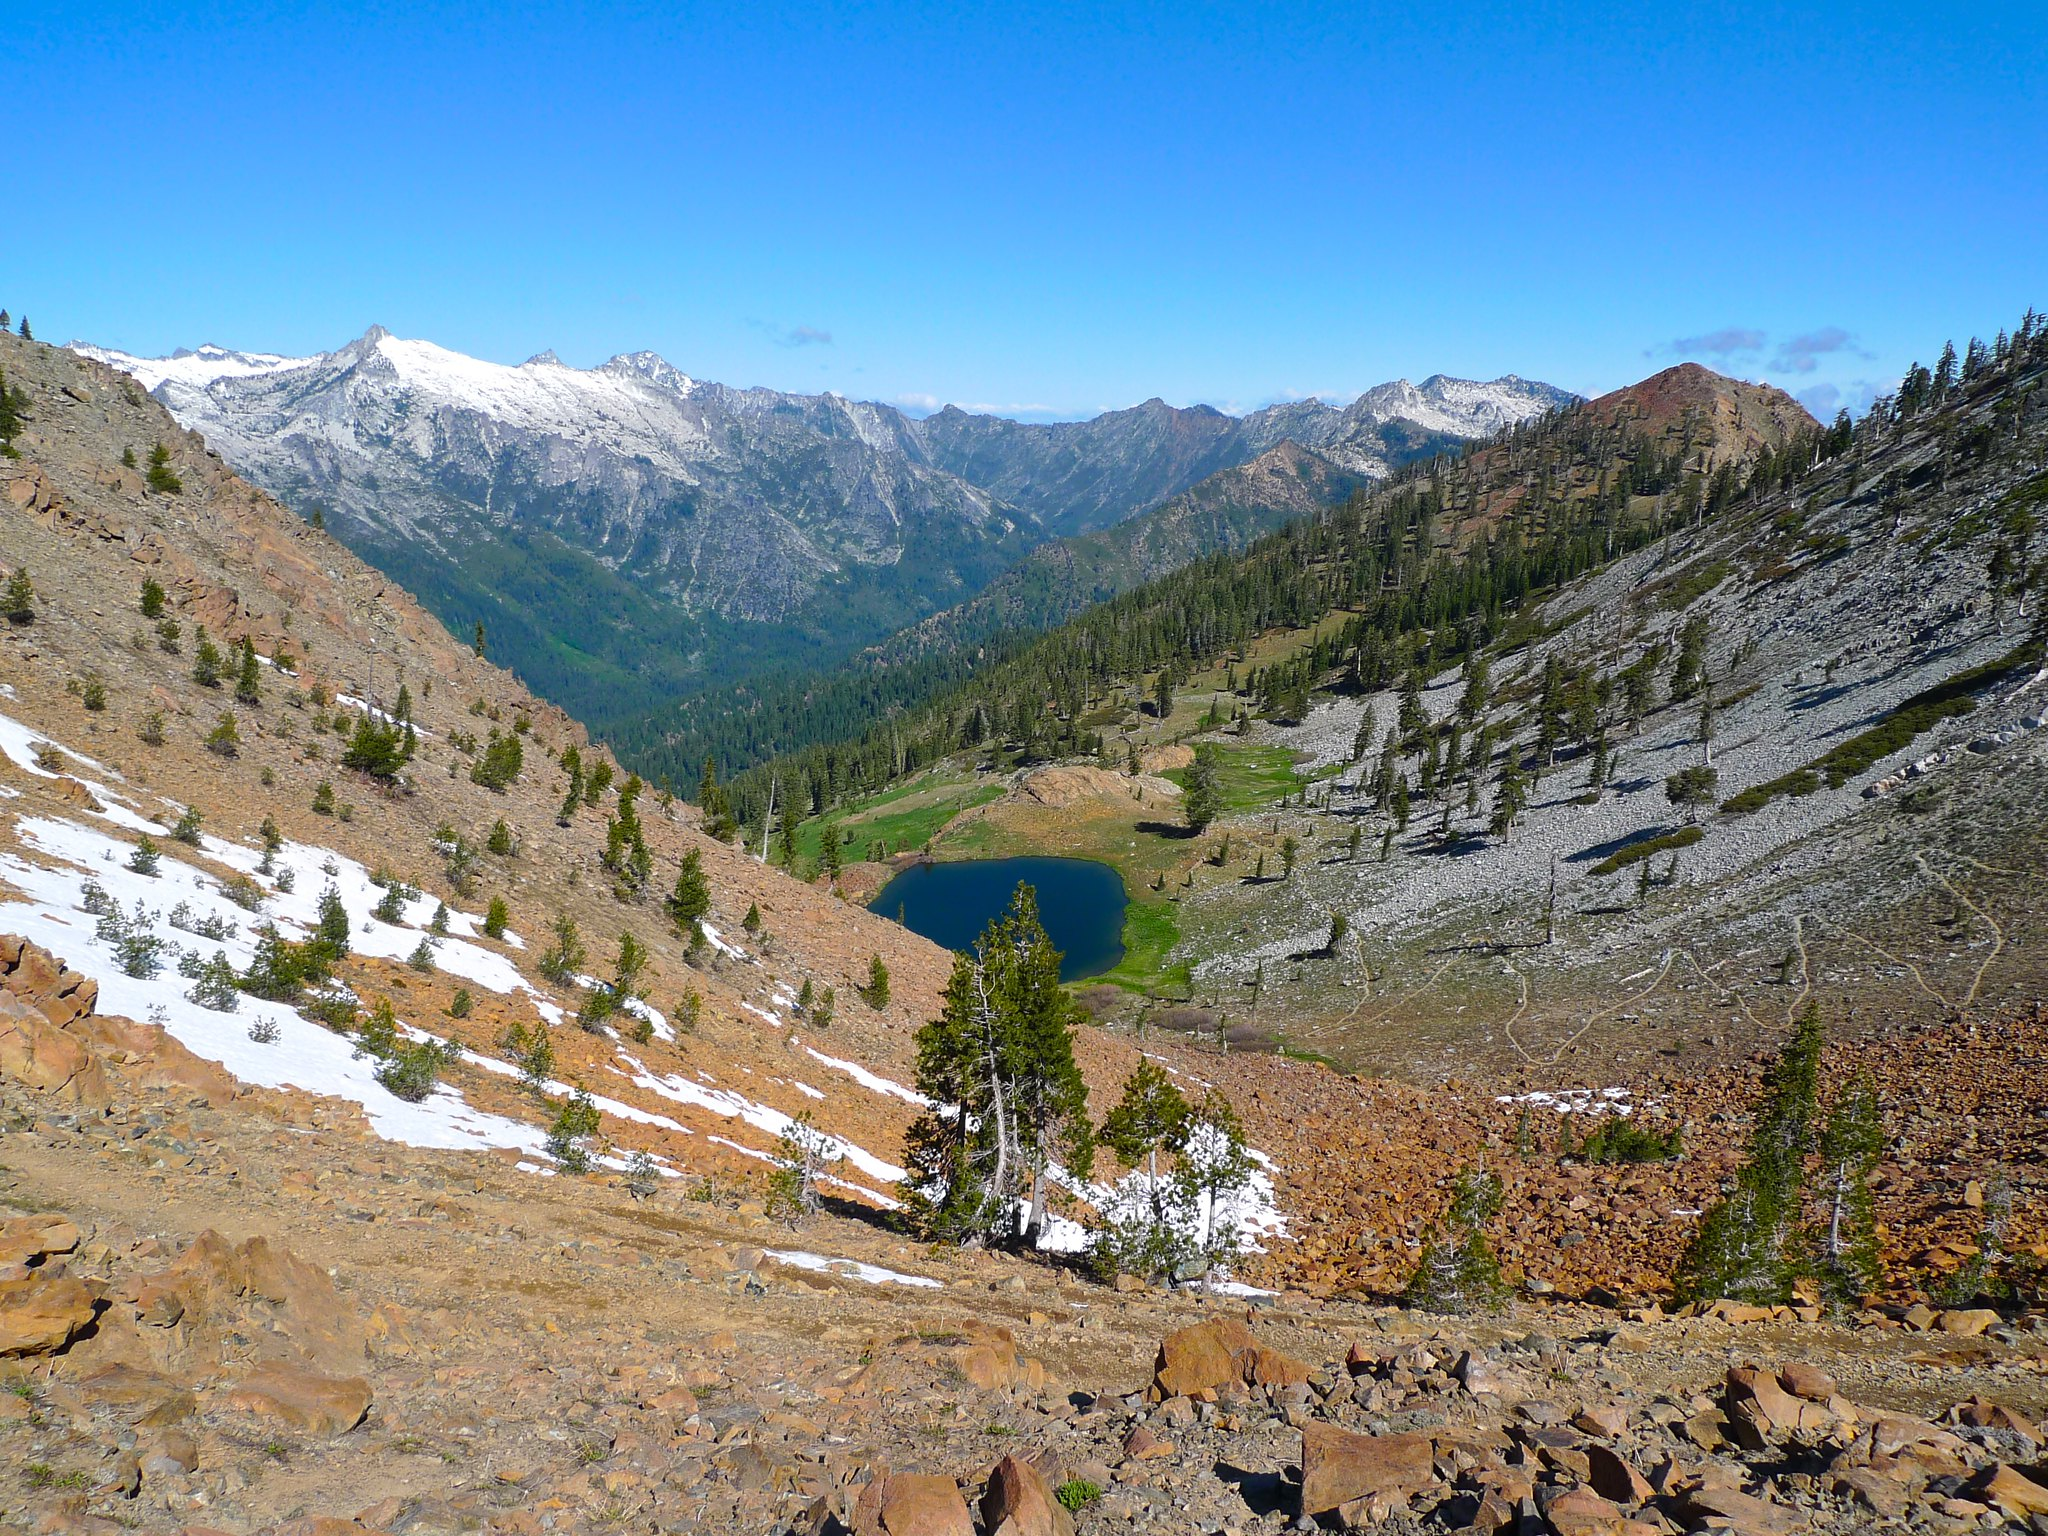 The pass above Diamond Lake offers the first up close views of the White Trinities and Stuart Fork way below.